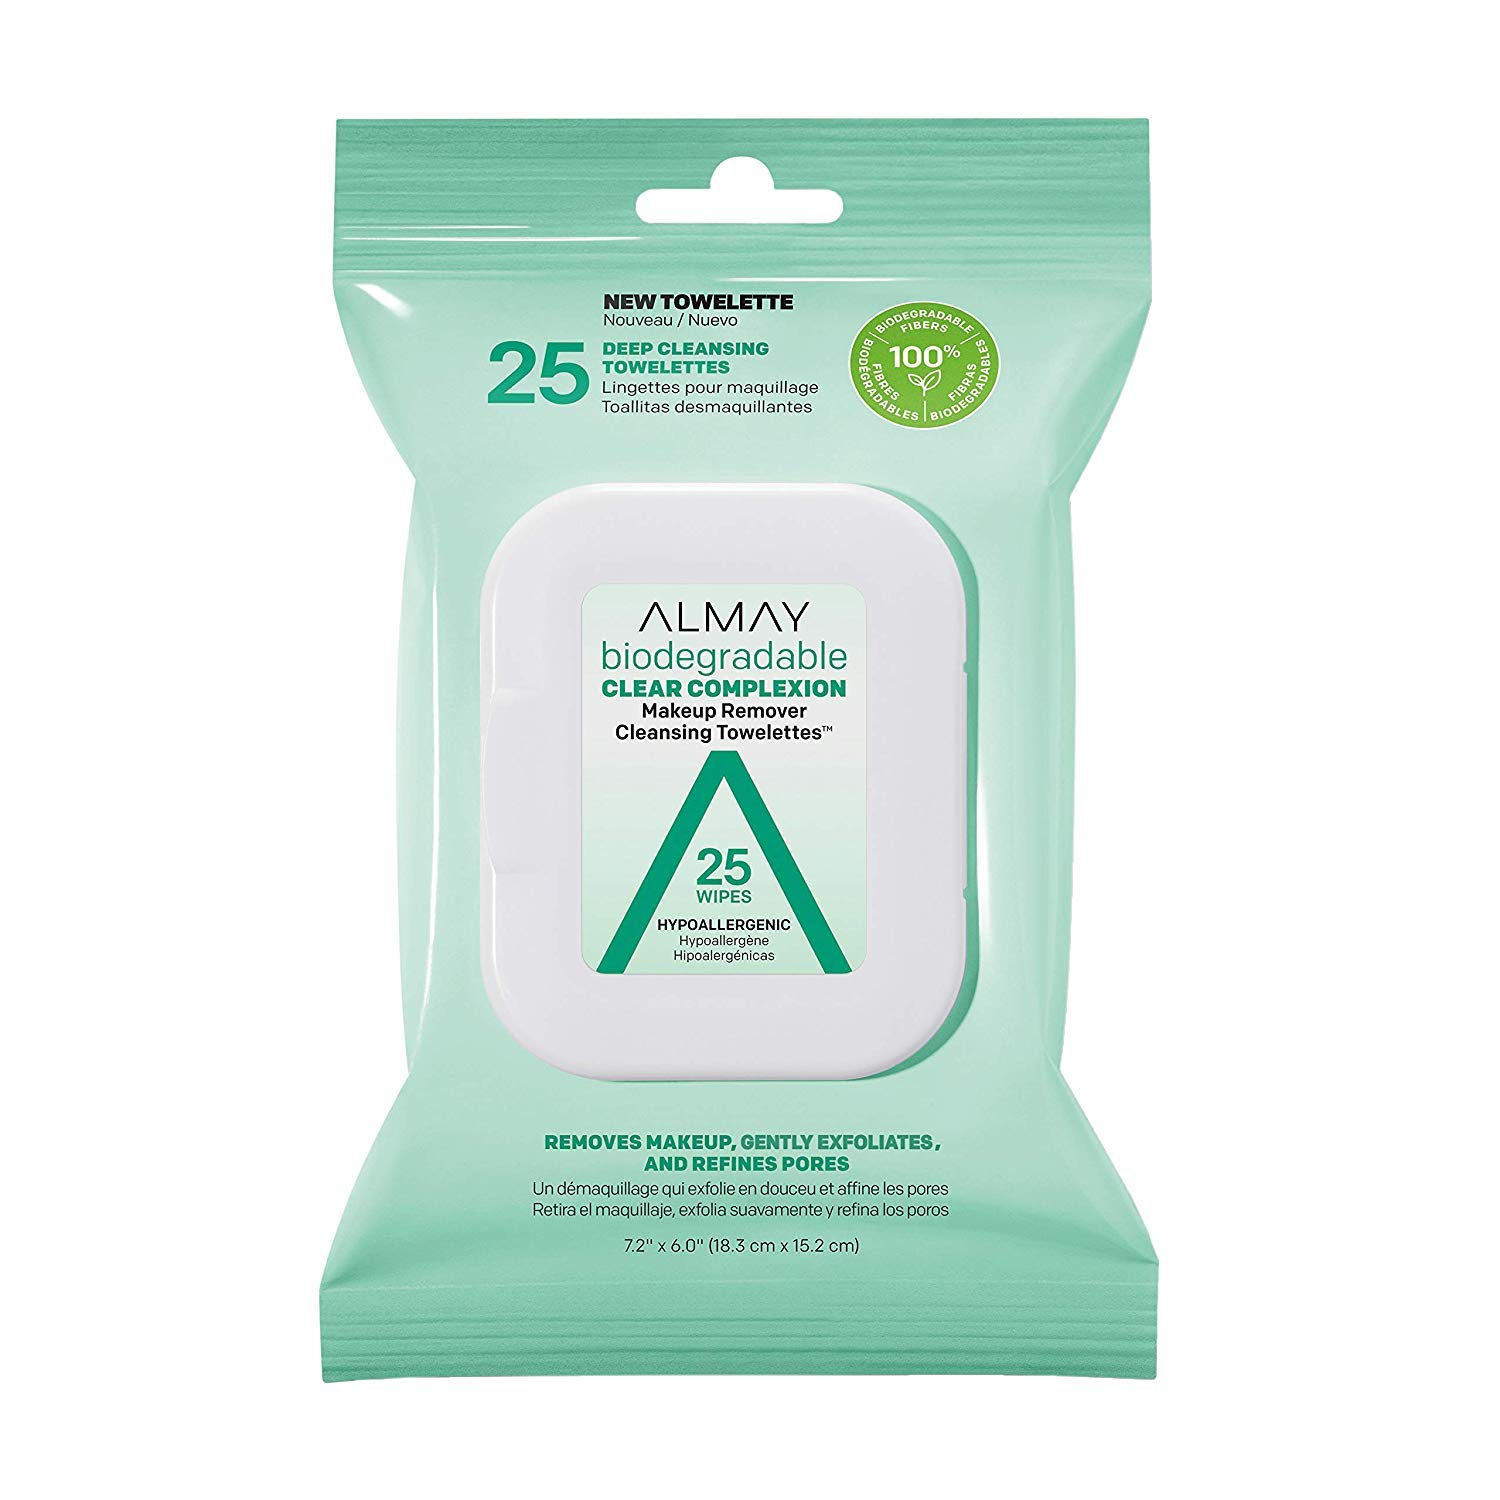 Almay Biodegradable Clear Complexion Makeup Remover Towelettes, 25 Wipes (Pack of 2)